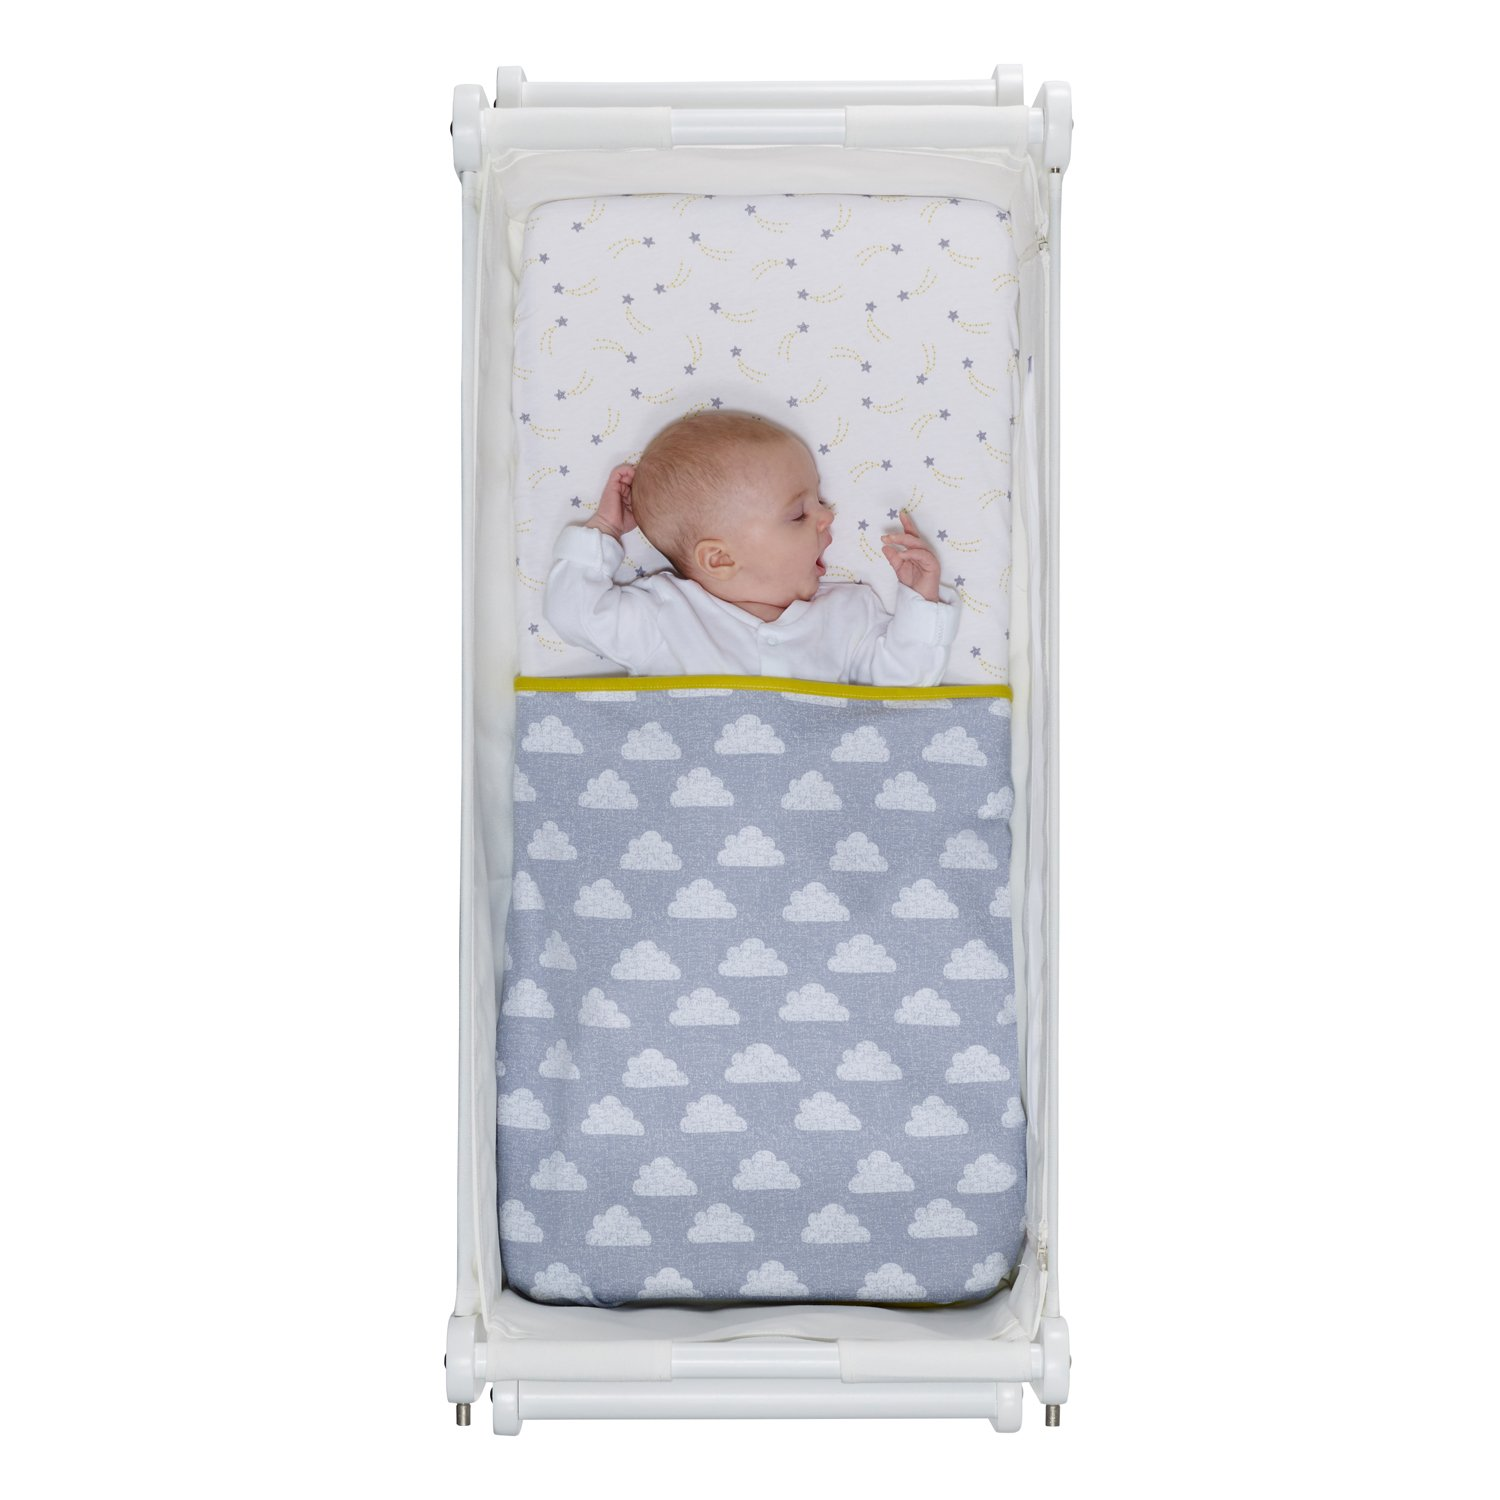 cribs crib sets araish blankets inner sheets bedding baby